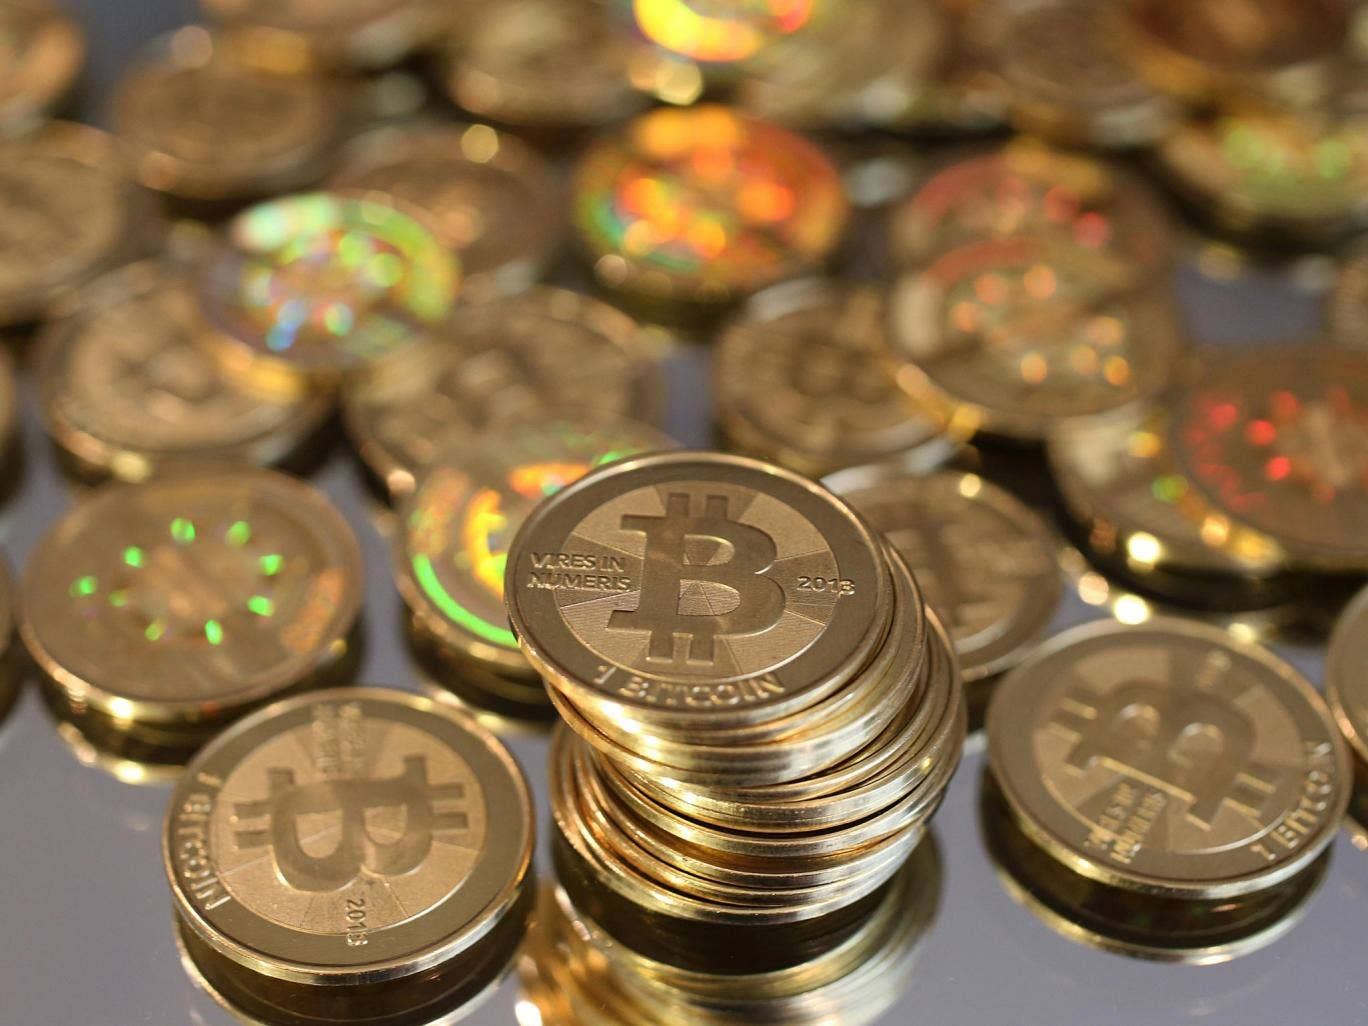 Bitcoin can be used on legitimate apps